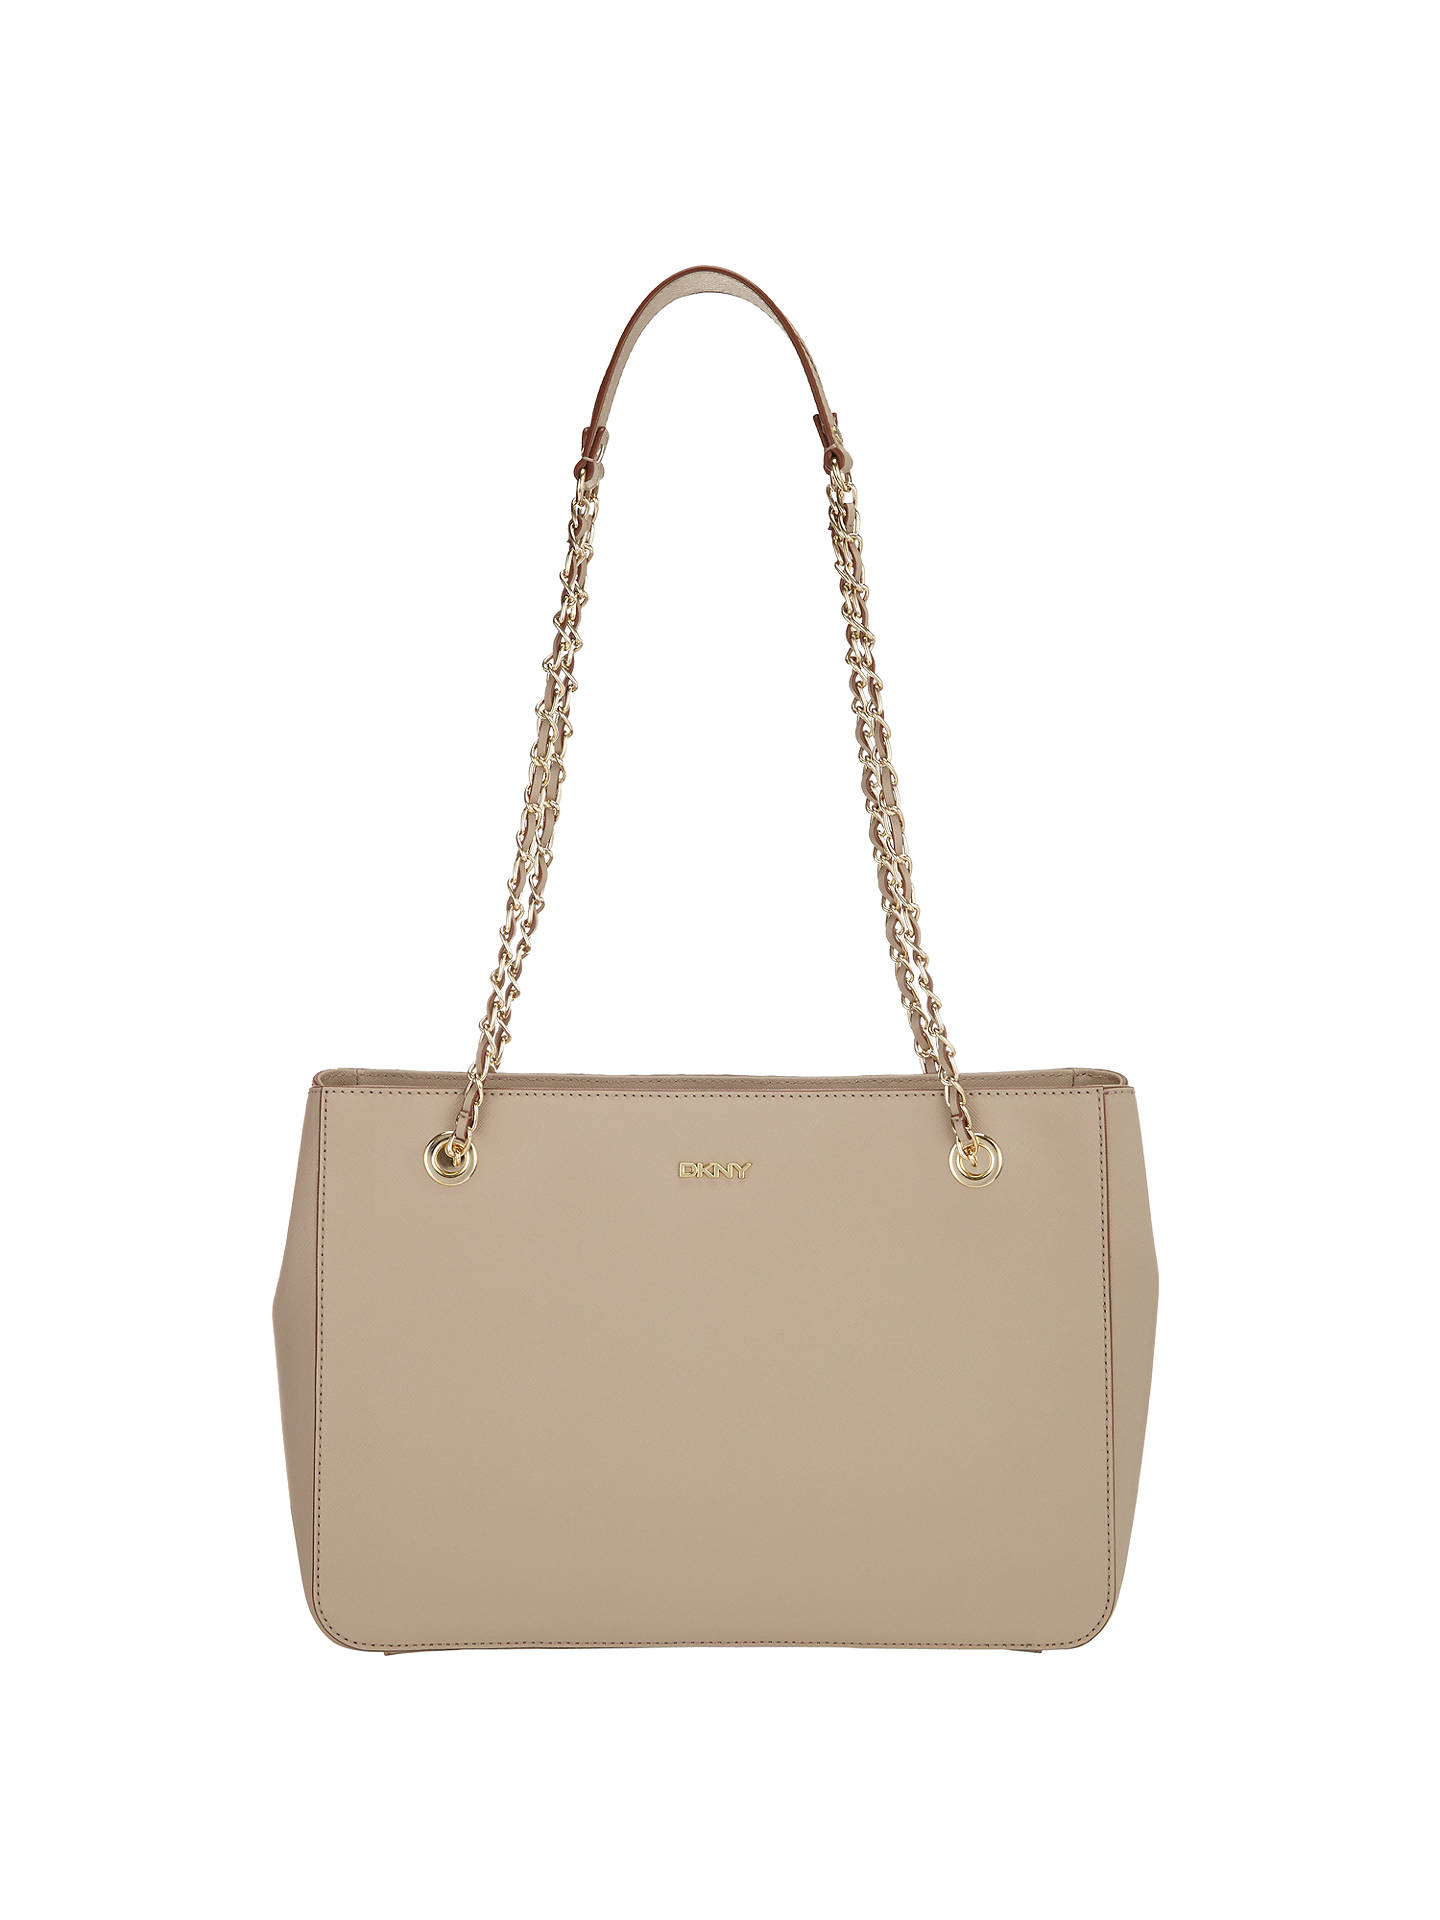 726043dd6 Buy DKNY Bryant Park Saffiano Leather Shopper Chain Bag, Cement Online at  johnlewis.com ...